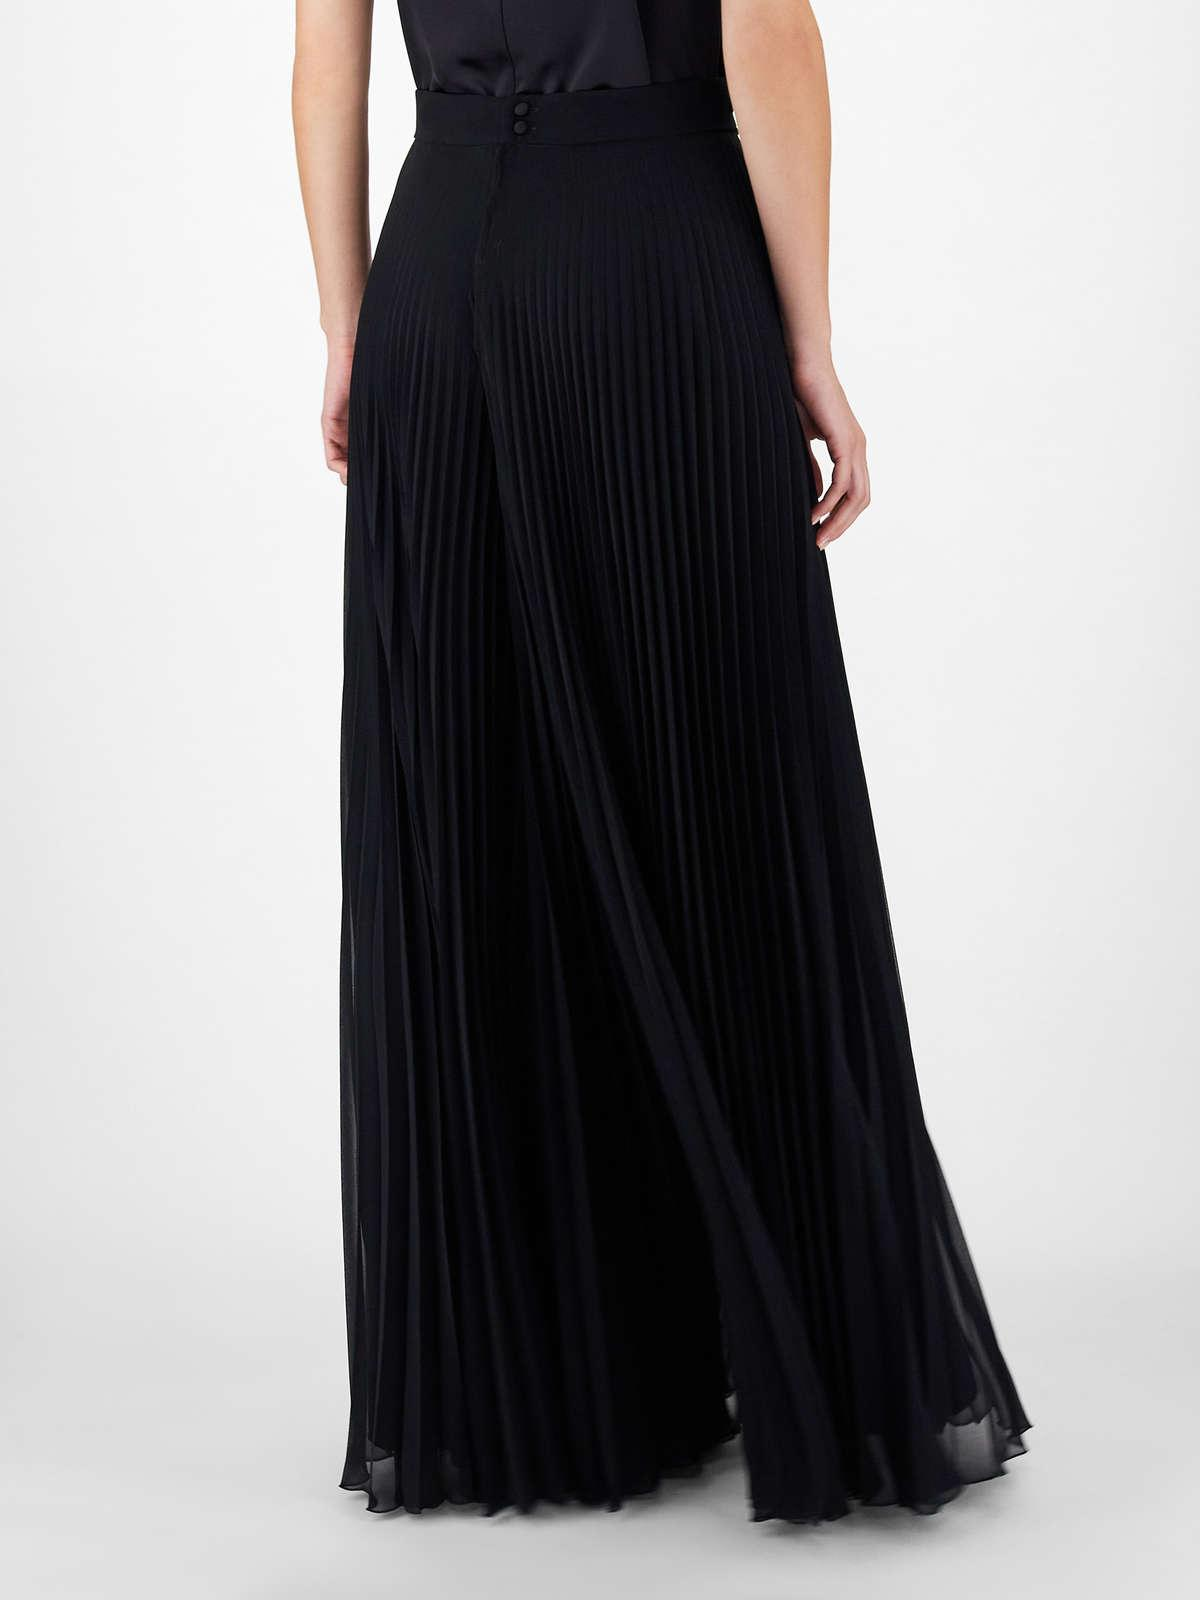 Womens Max Mara Trousers And Jeans | Georgette Sablé Culottes Black